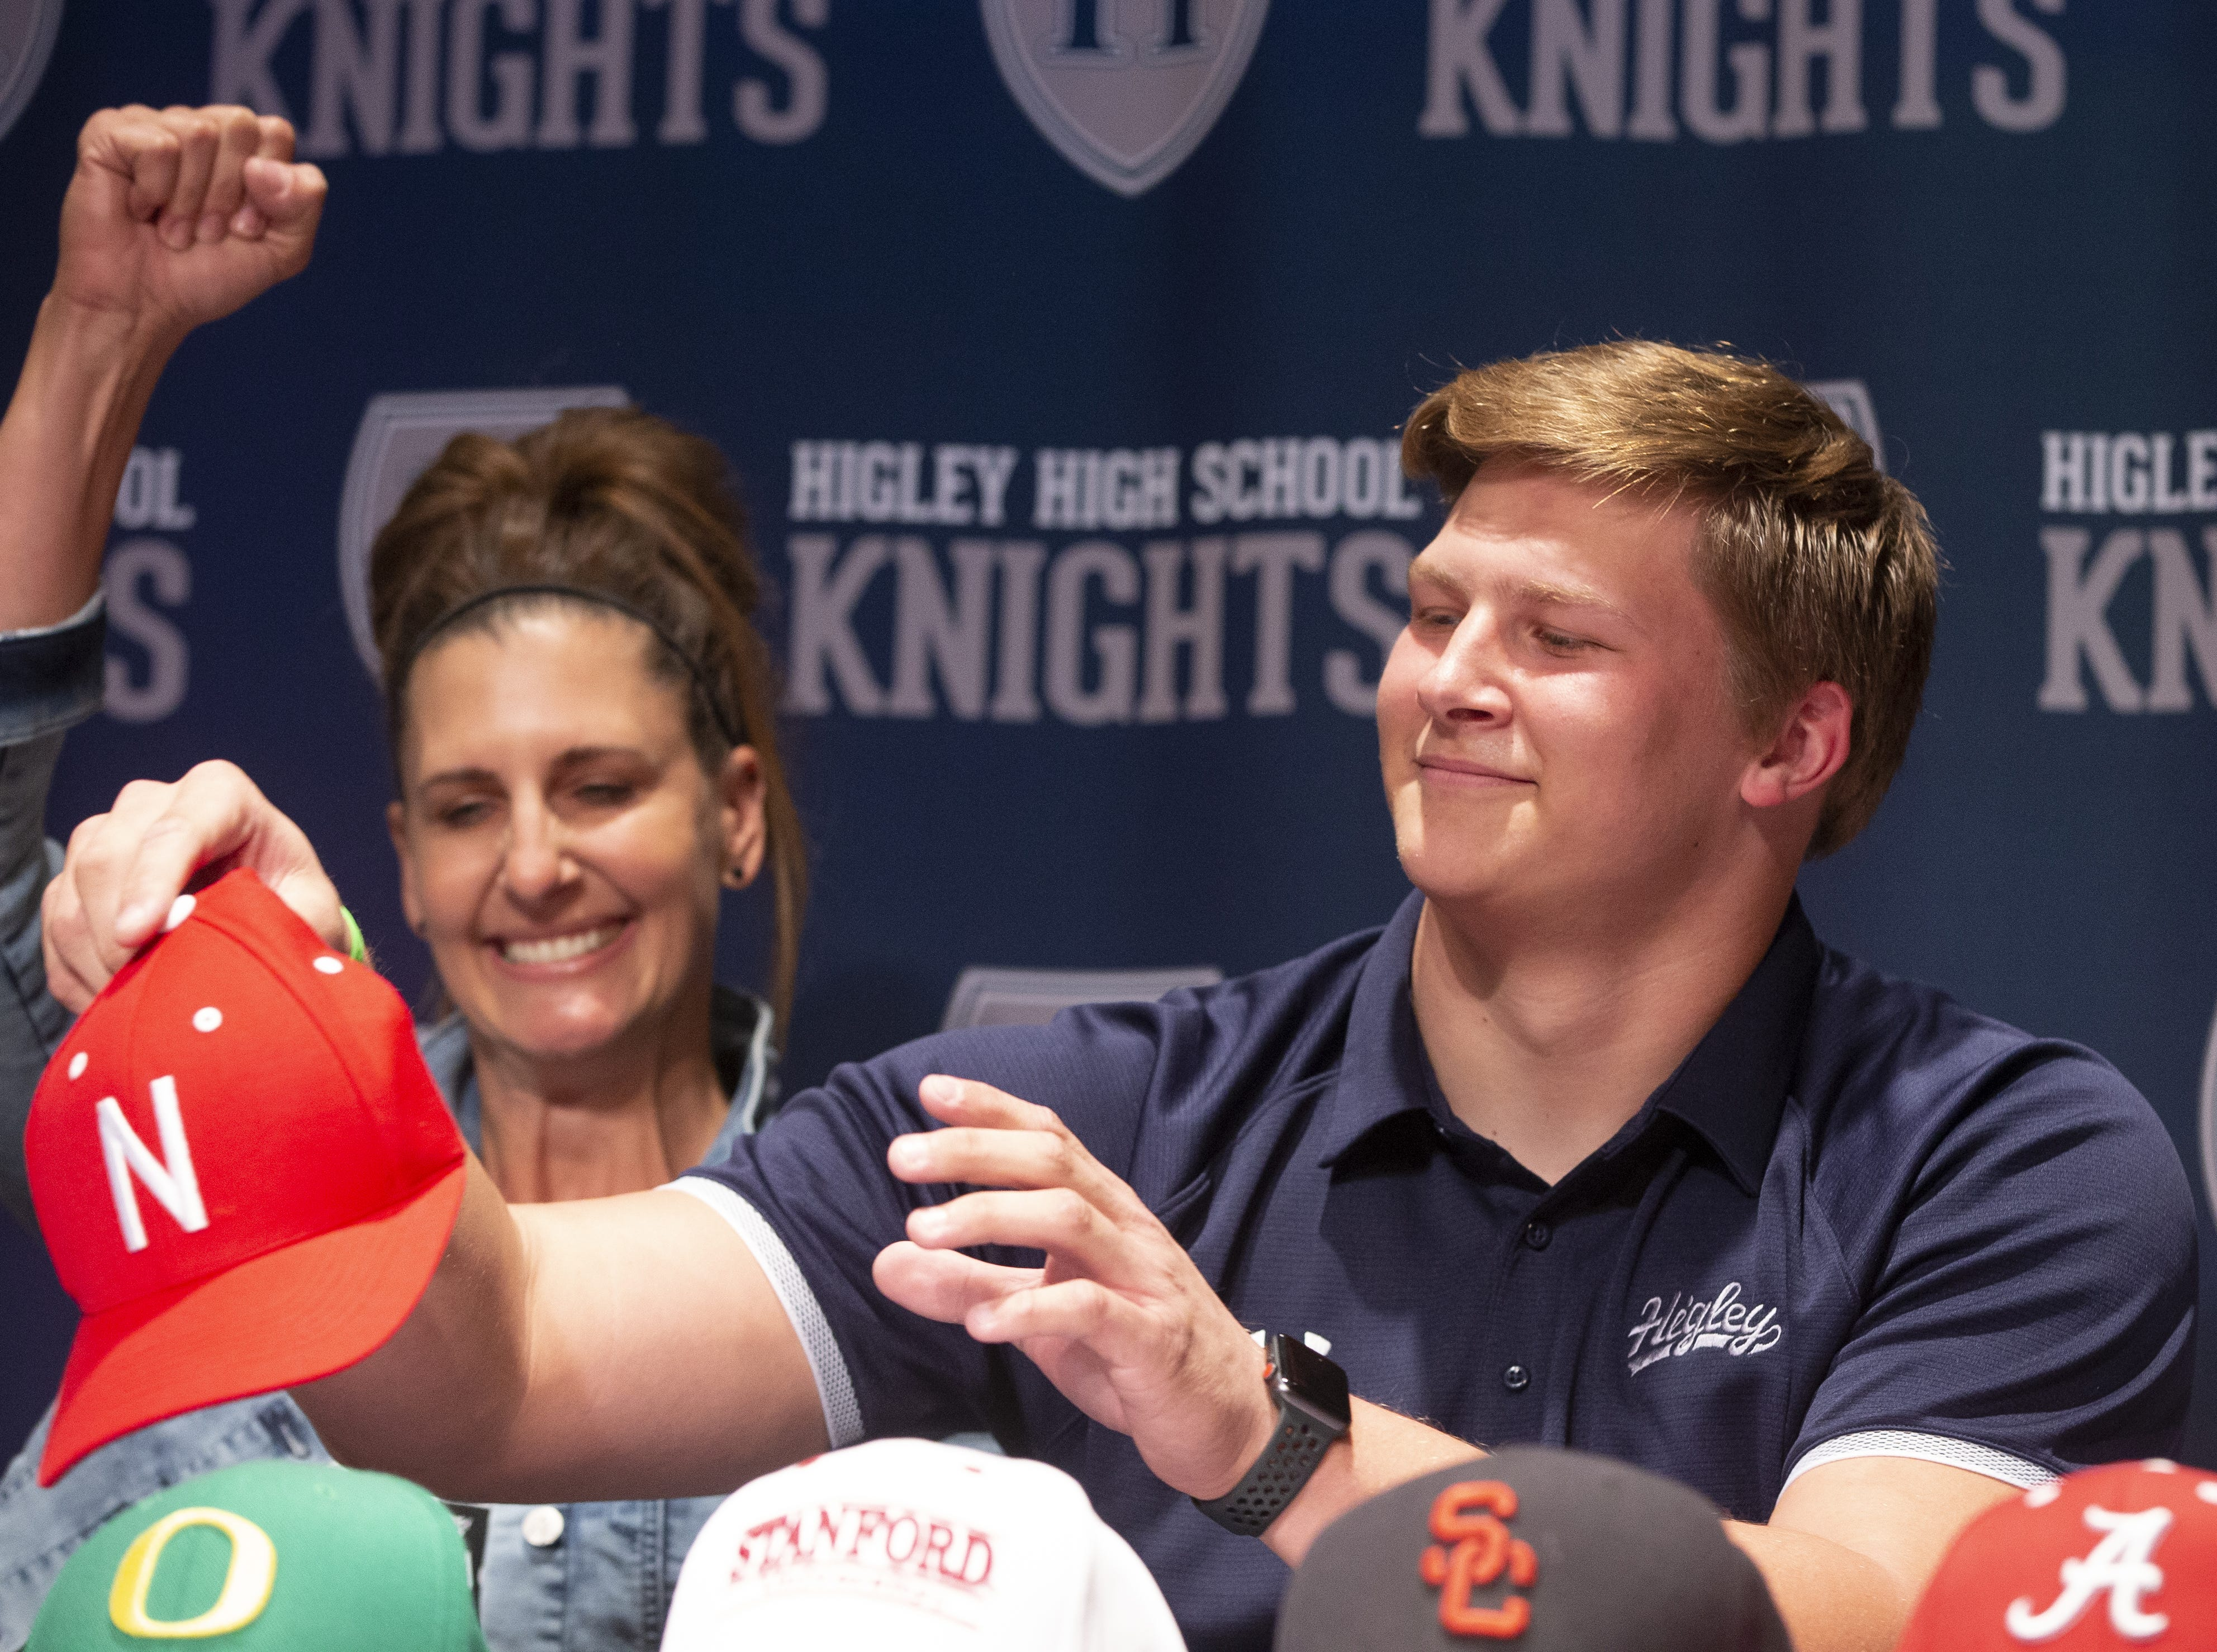 Higley defensive lineman Ty Robinson celebrates with his mom, Tresha, after he announces he will be attending University of Nebraska during signing day at Higley High in Gilbert on December 19, 2018. #hsfb